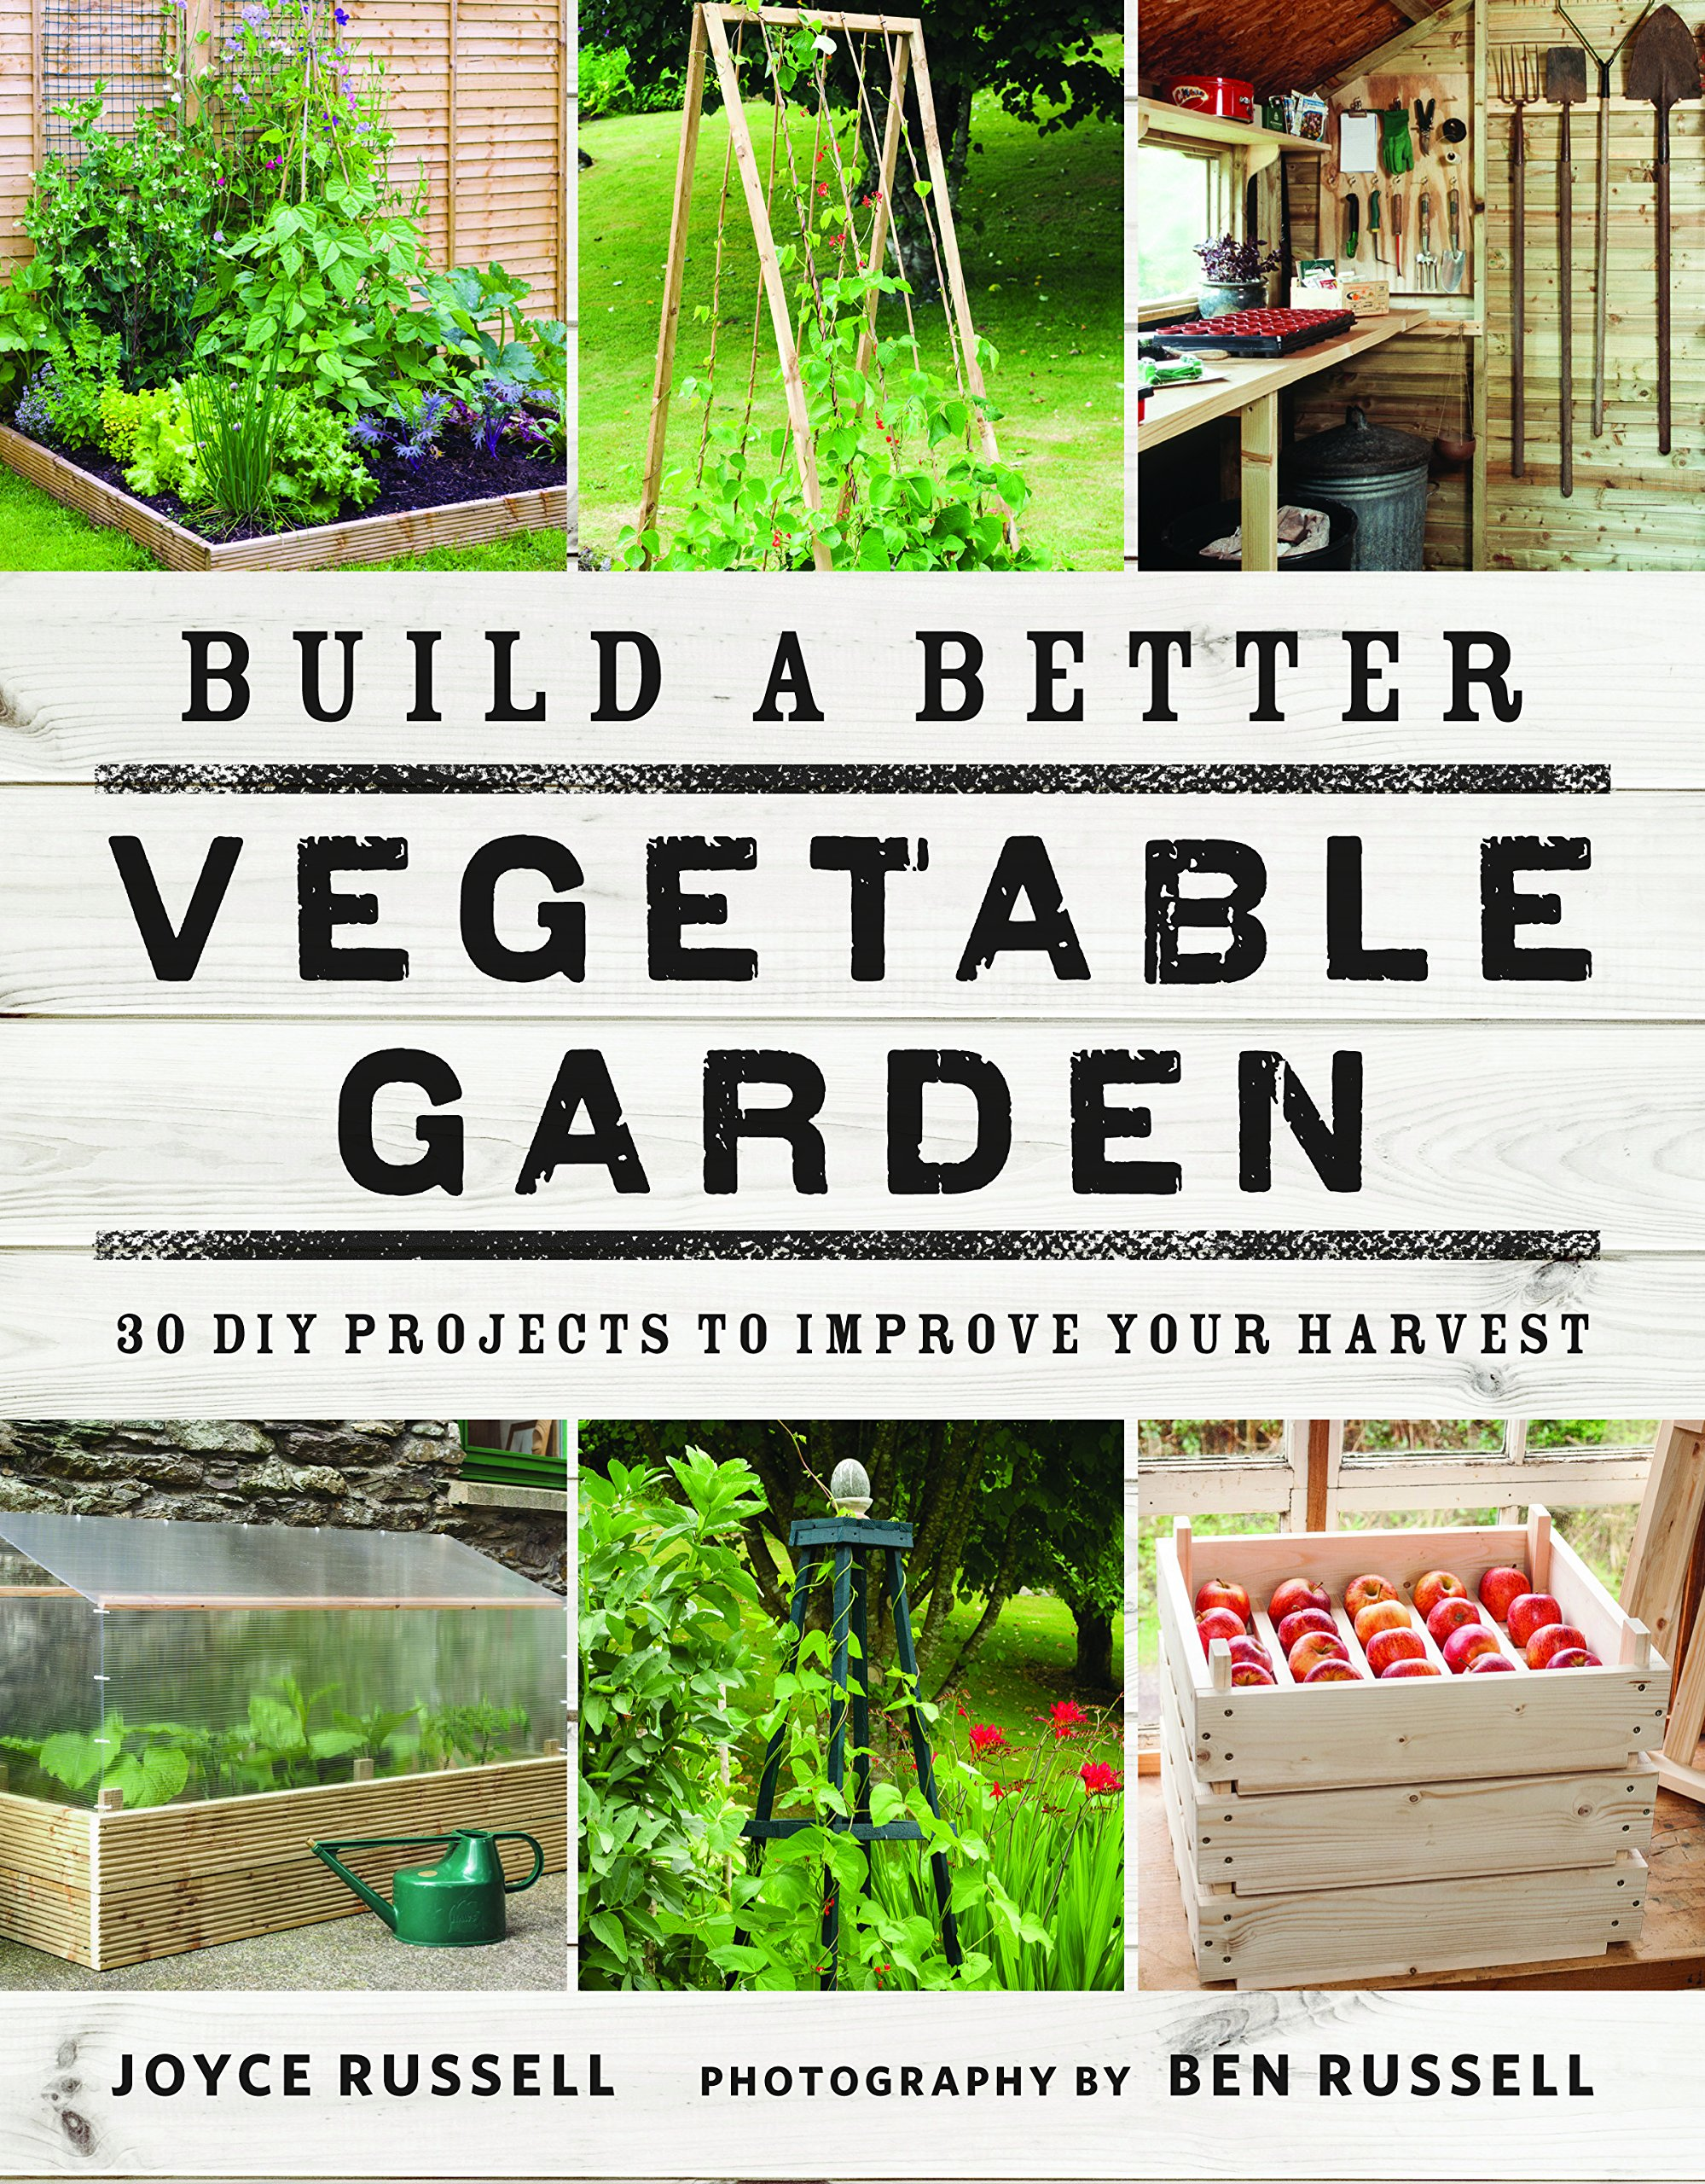 Build A Better Vegetable Garden 30 DIY Projects To Improve Your Harvest Joyce Russell Ben 9780711238428 Amazon Books